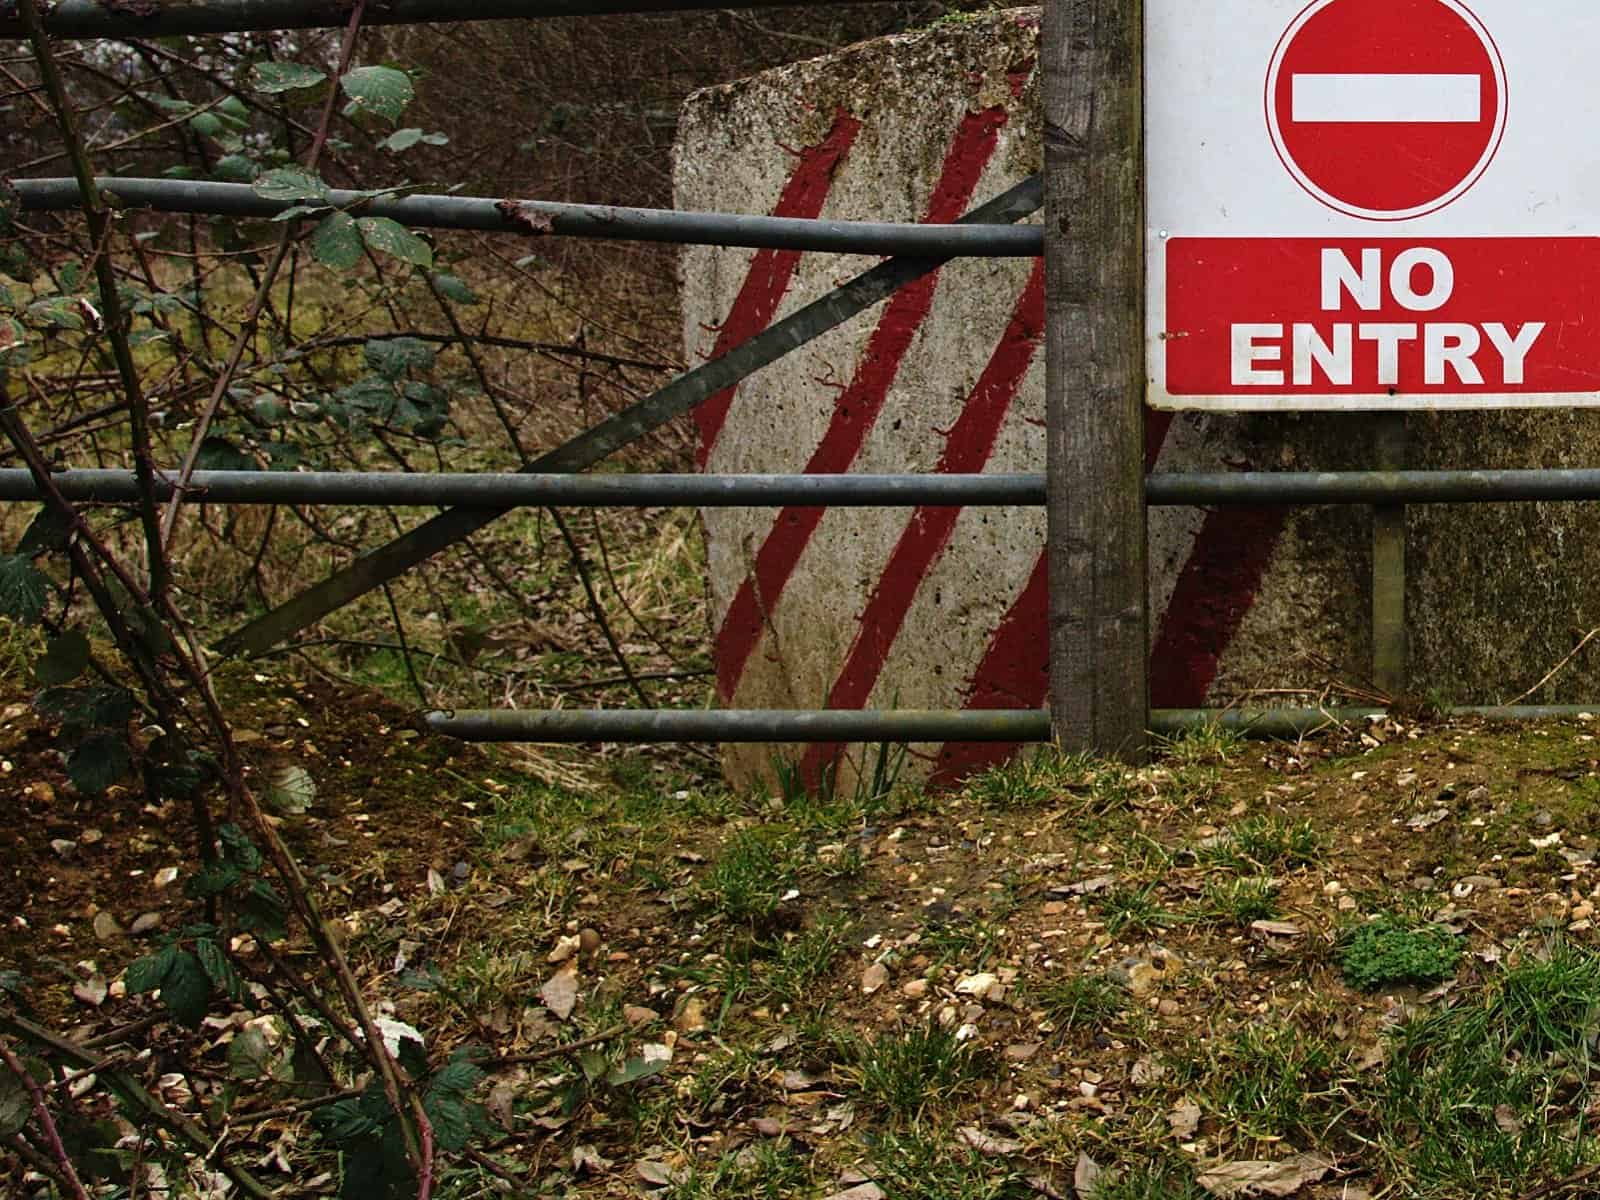 Photo: a no entry sign and a concrete road block